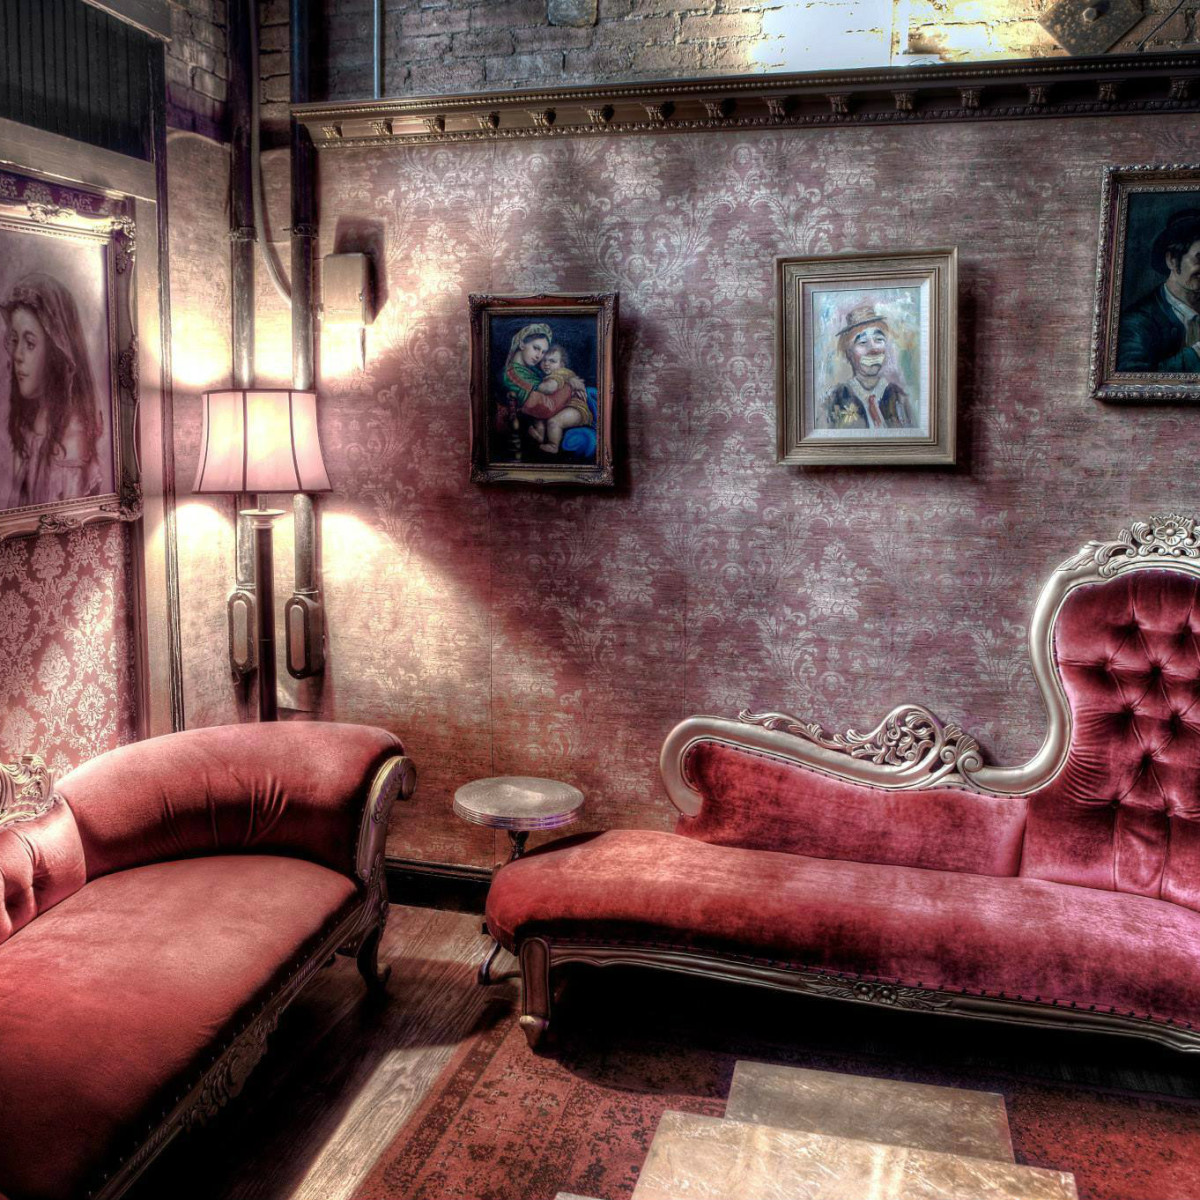 Anatol 3 Seater Retro Sofa The 10 Best Makeout Spots In Dallas To Steal A Kiss Culturemap